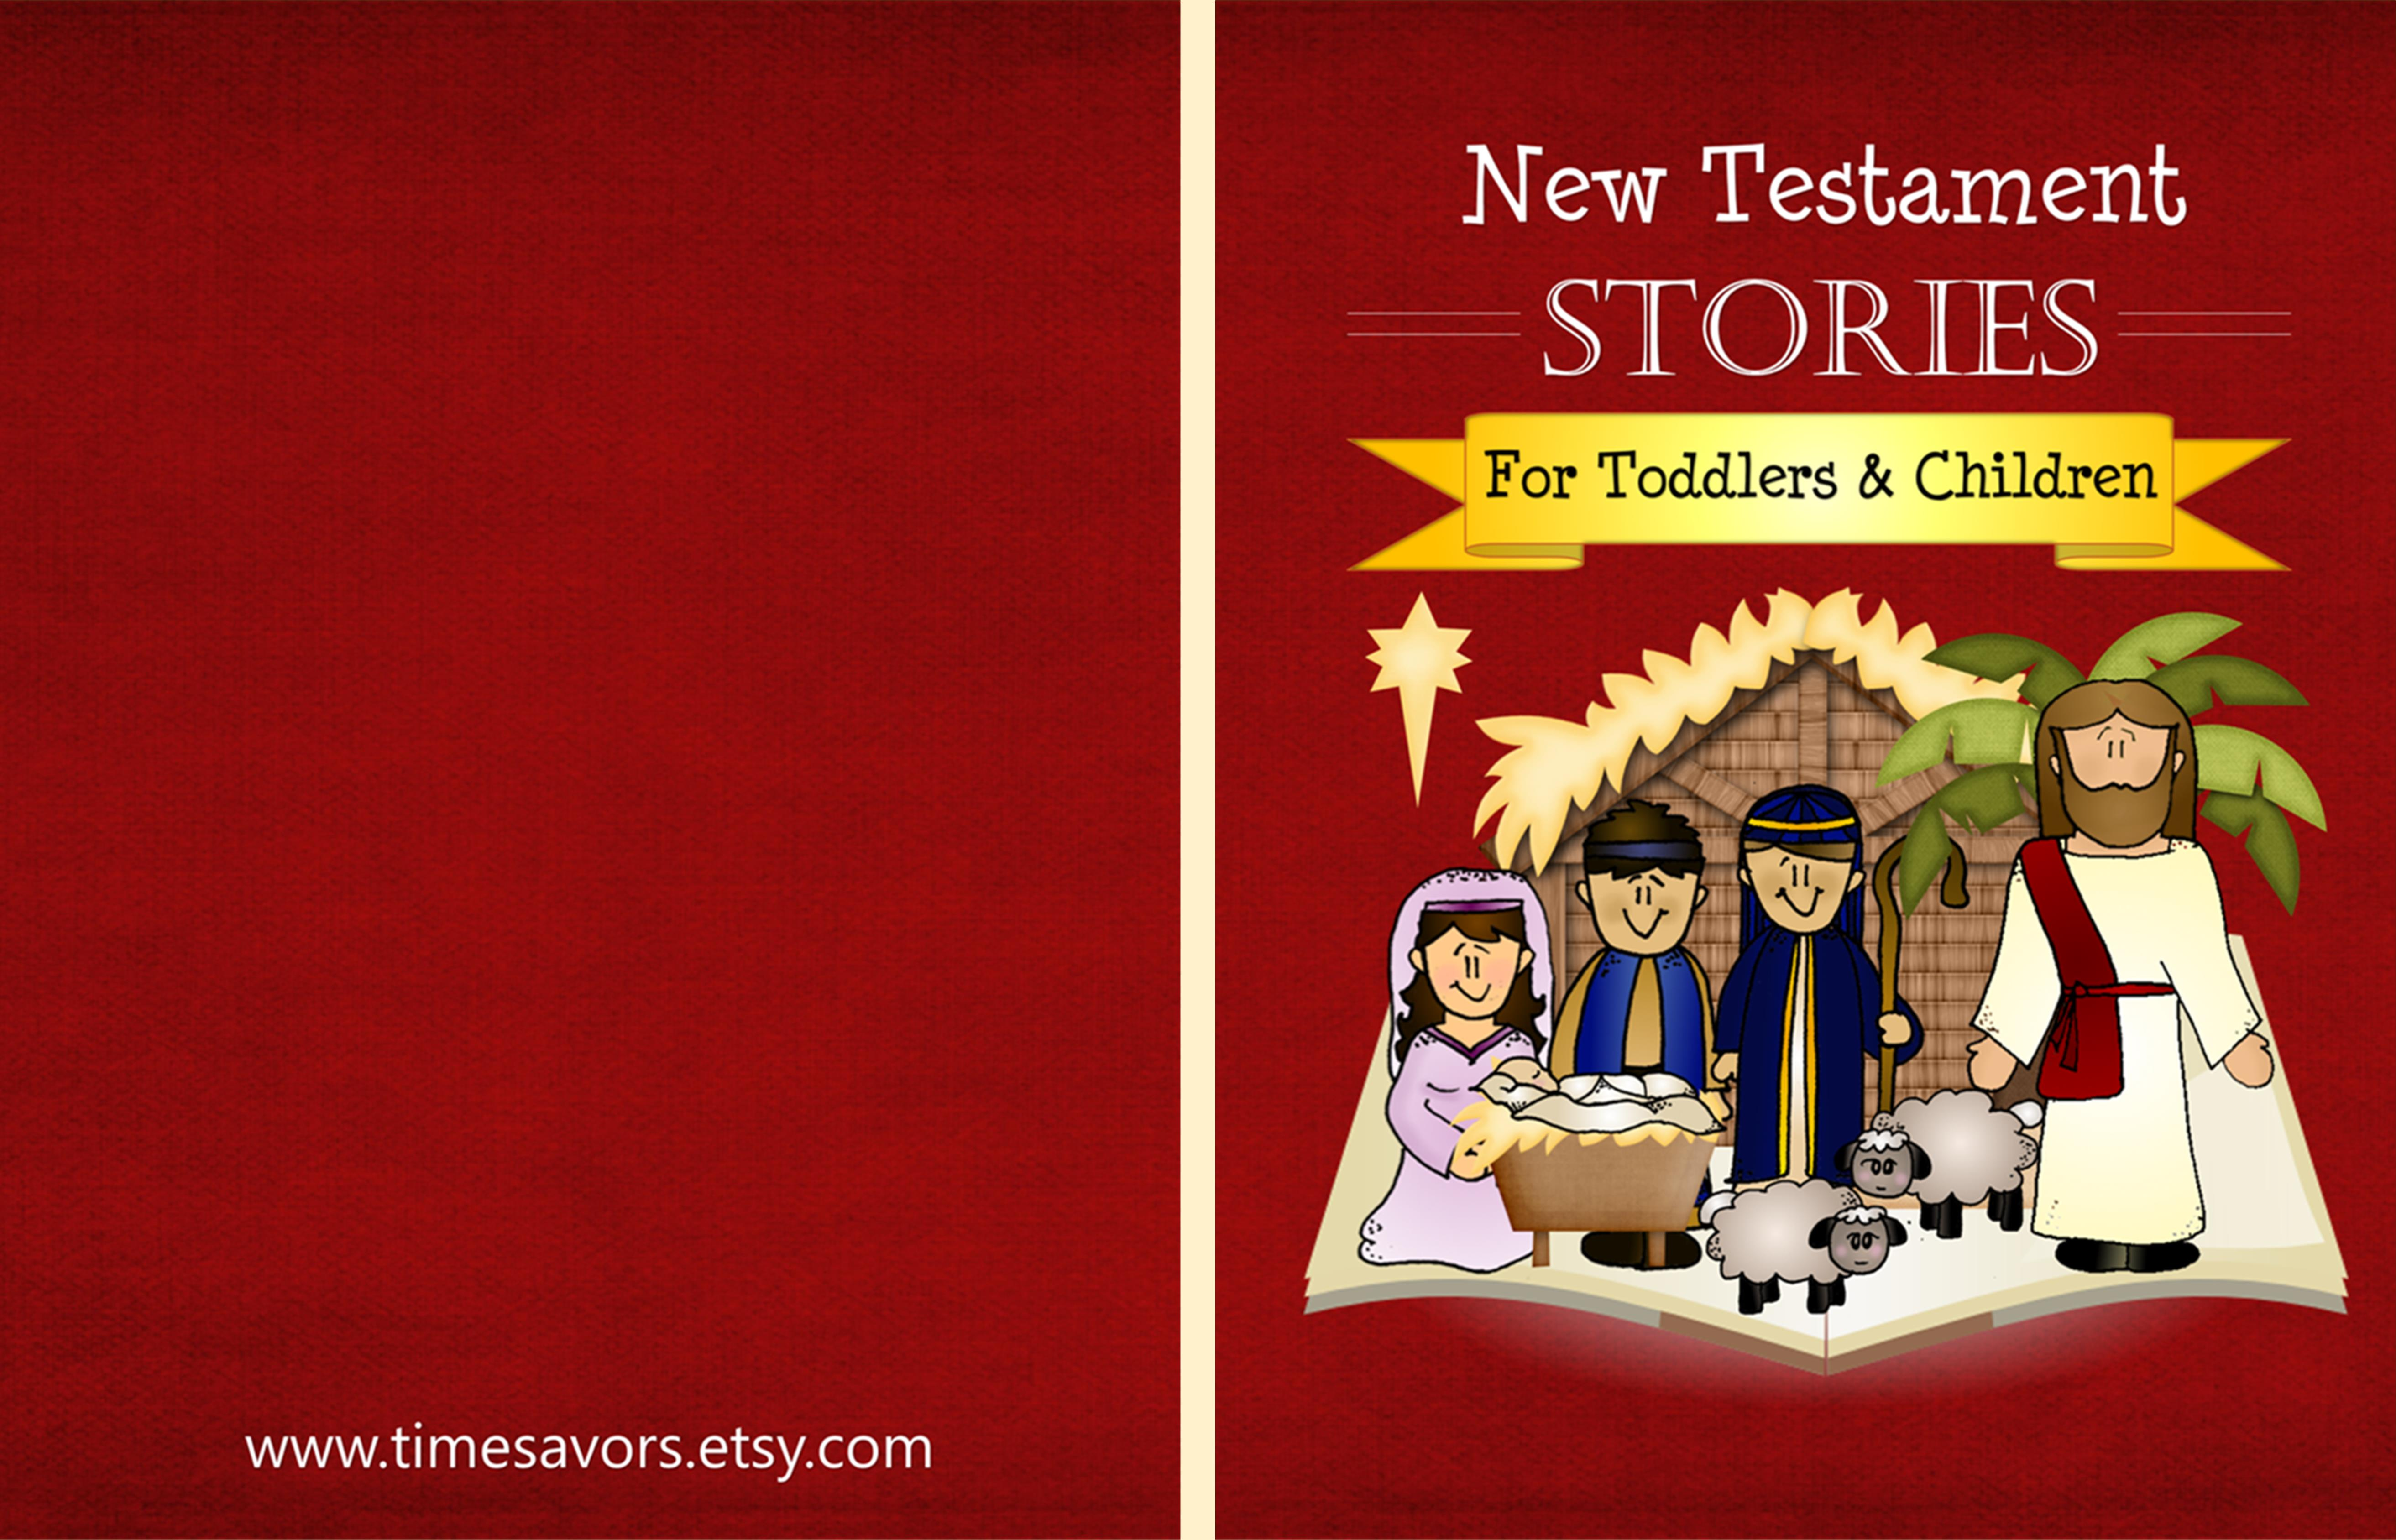 New Testament Stories cover image